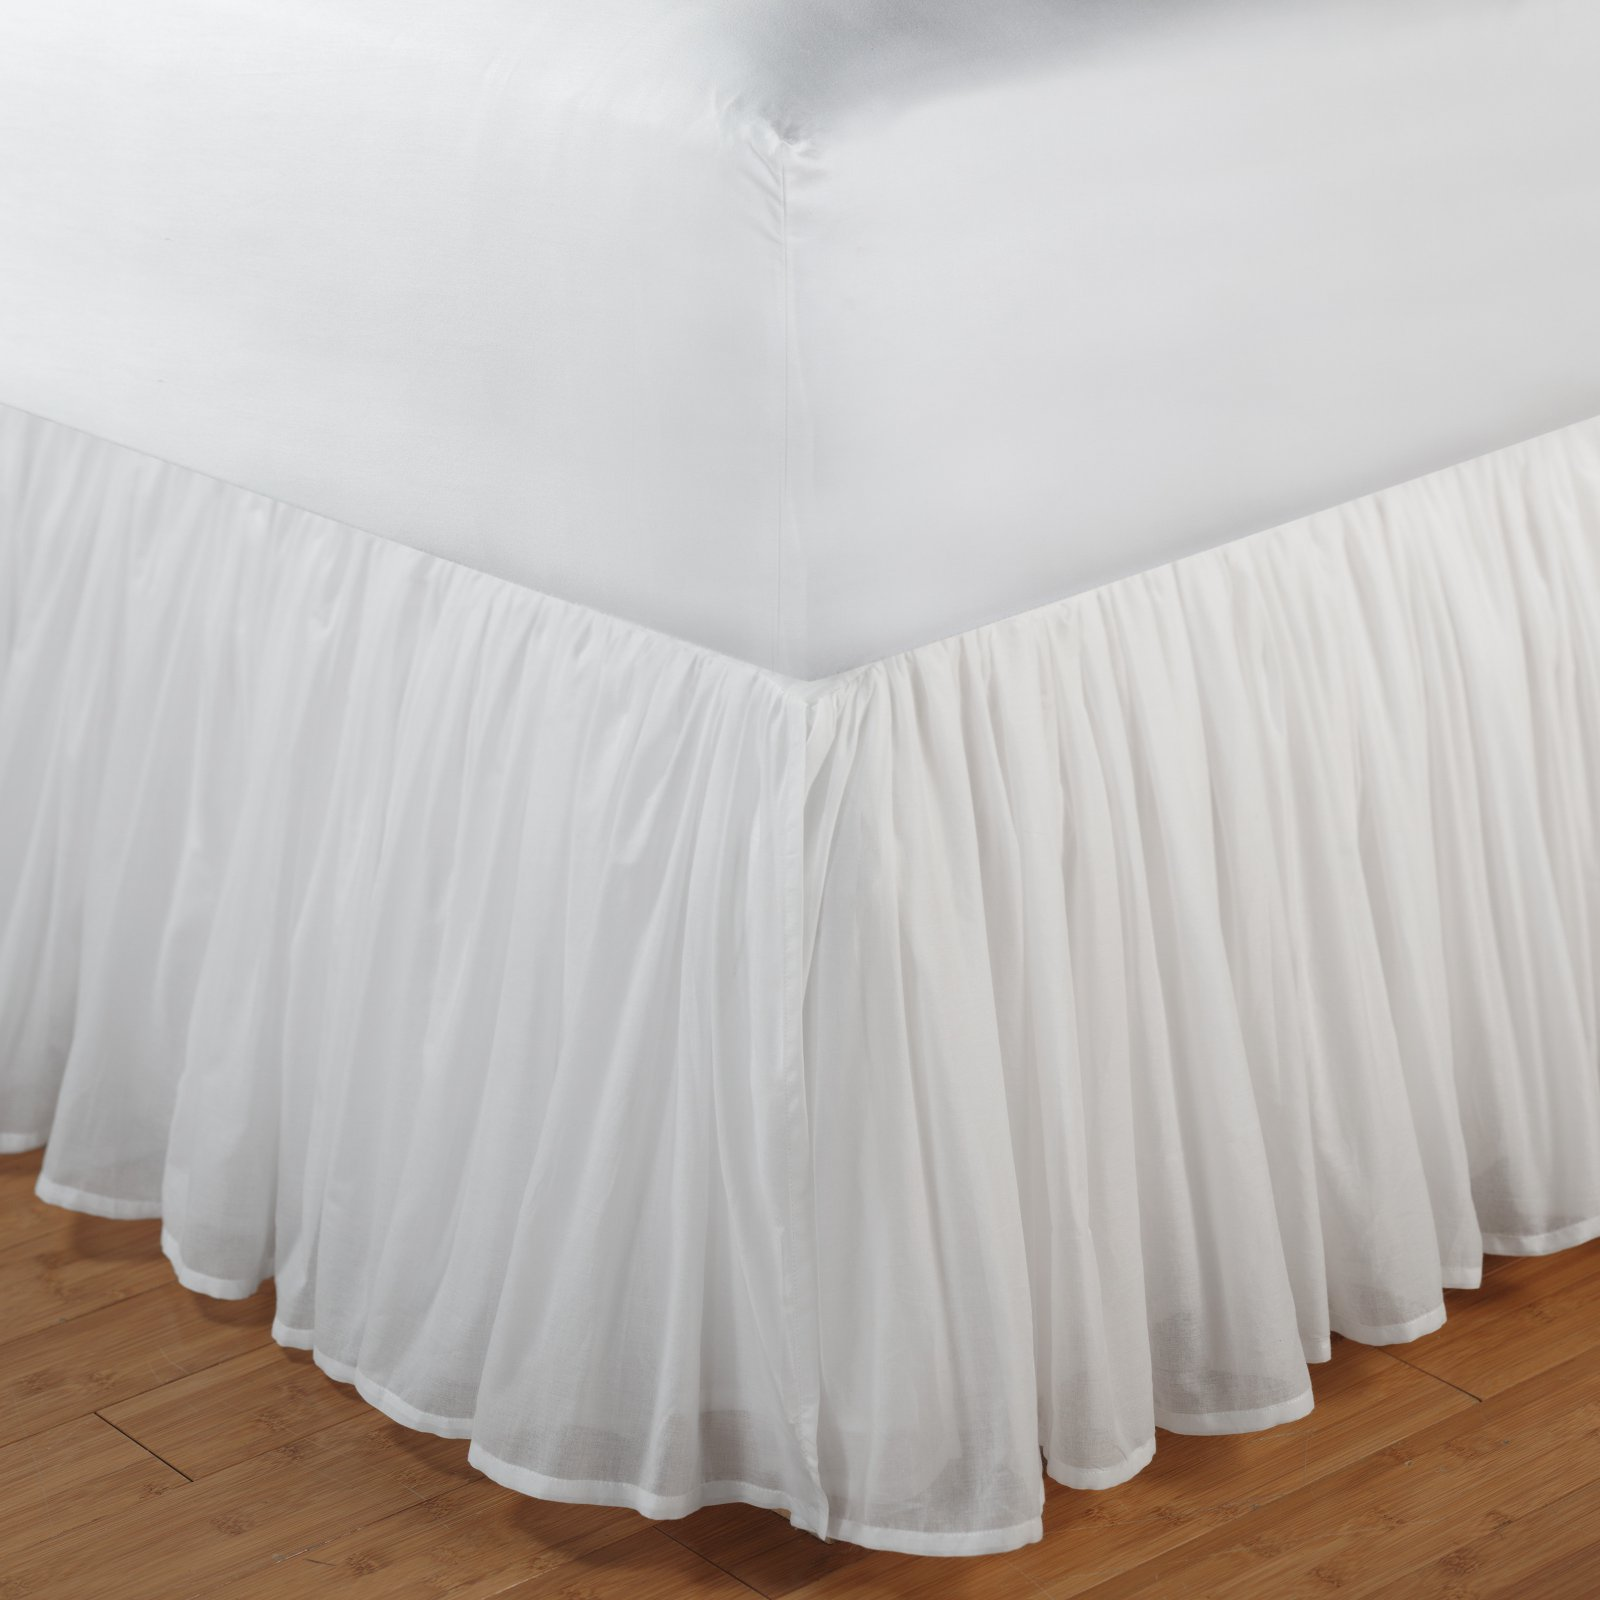 Greenland Home Fashions Cotton Voile Bed Skirt - 18 in. Ruffle - White image